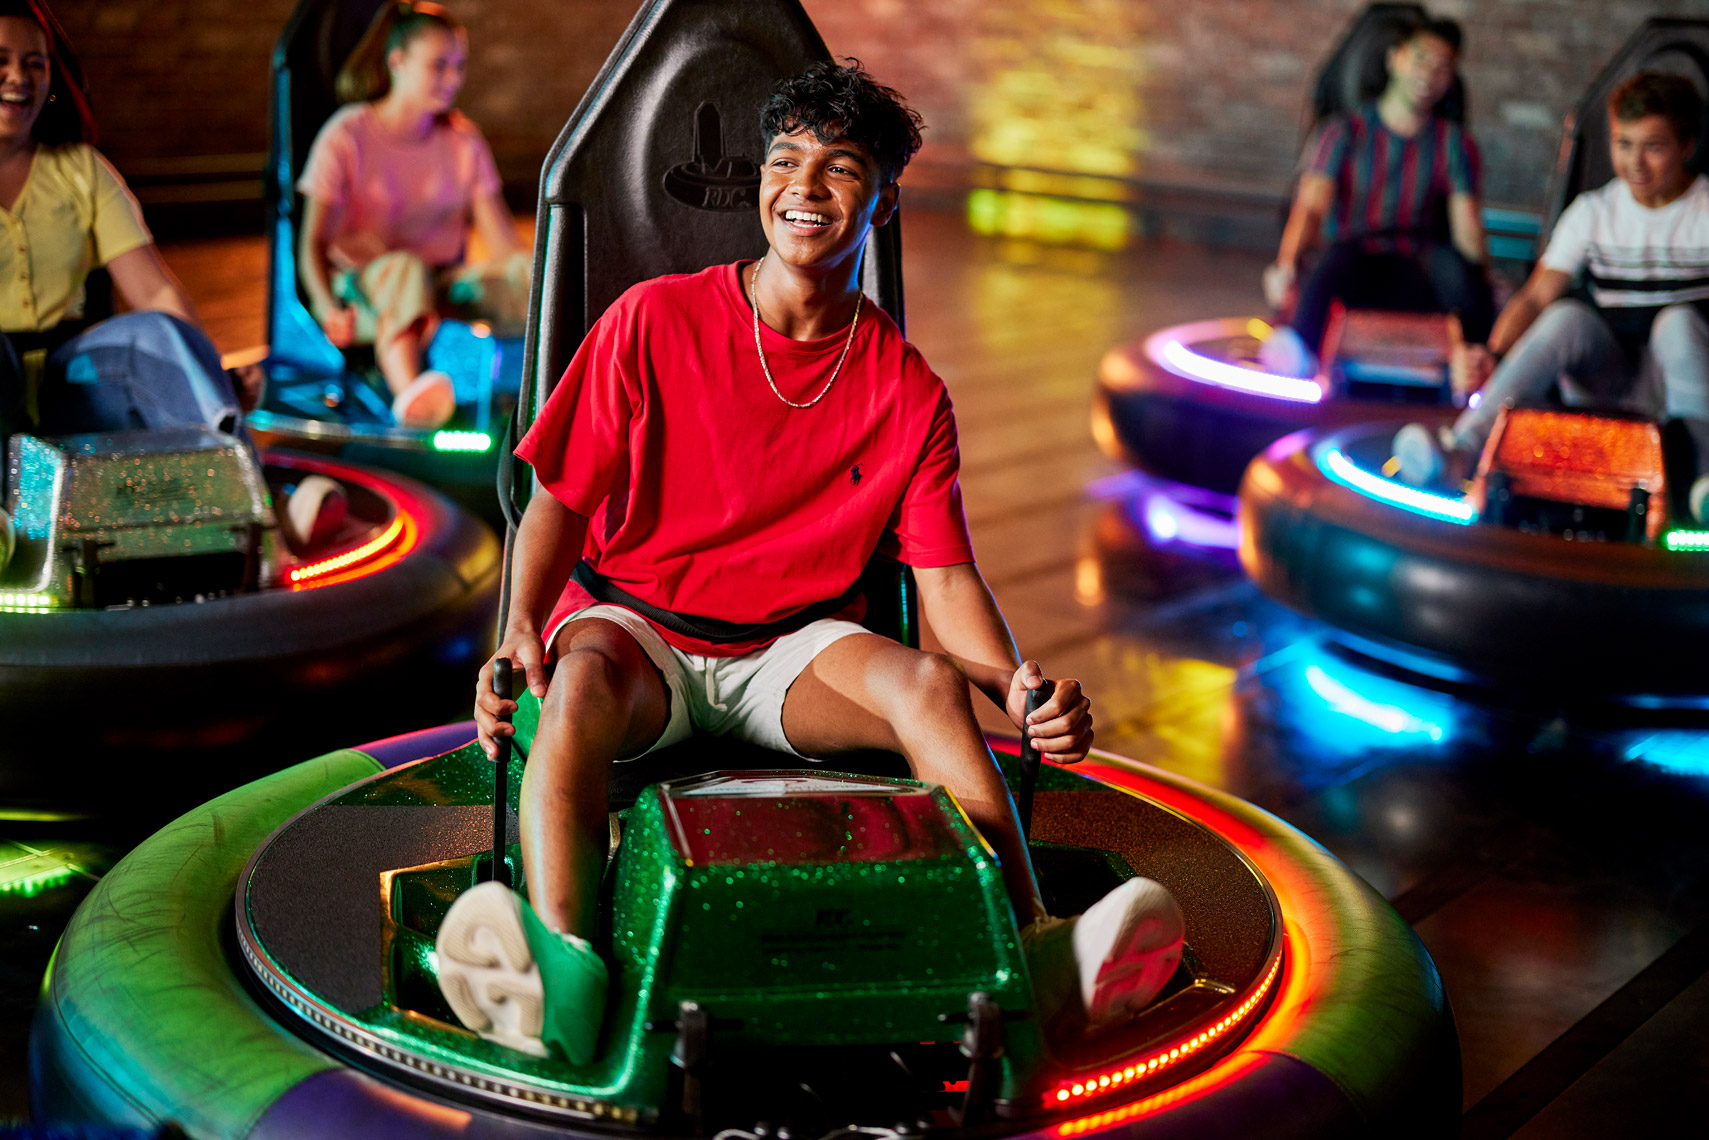 71220_ZoneBowling_BumperCars_JH_DAY2_0410B